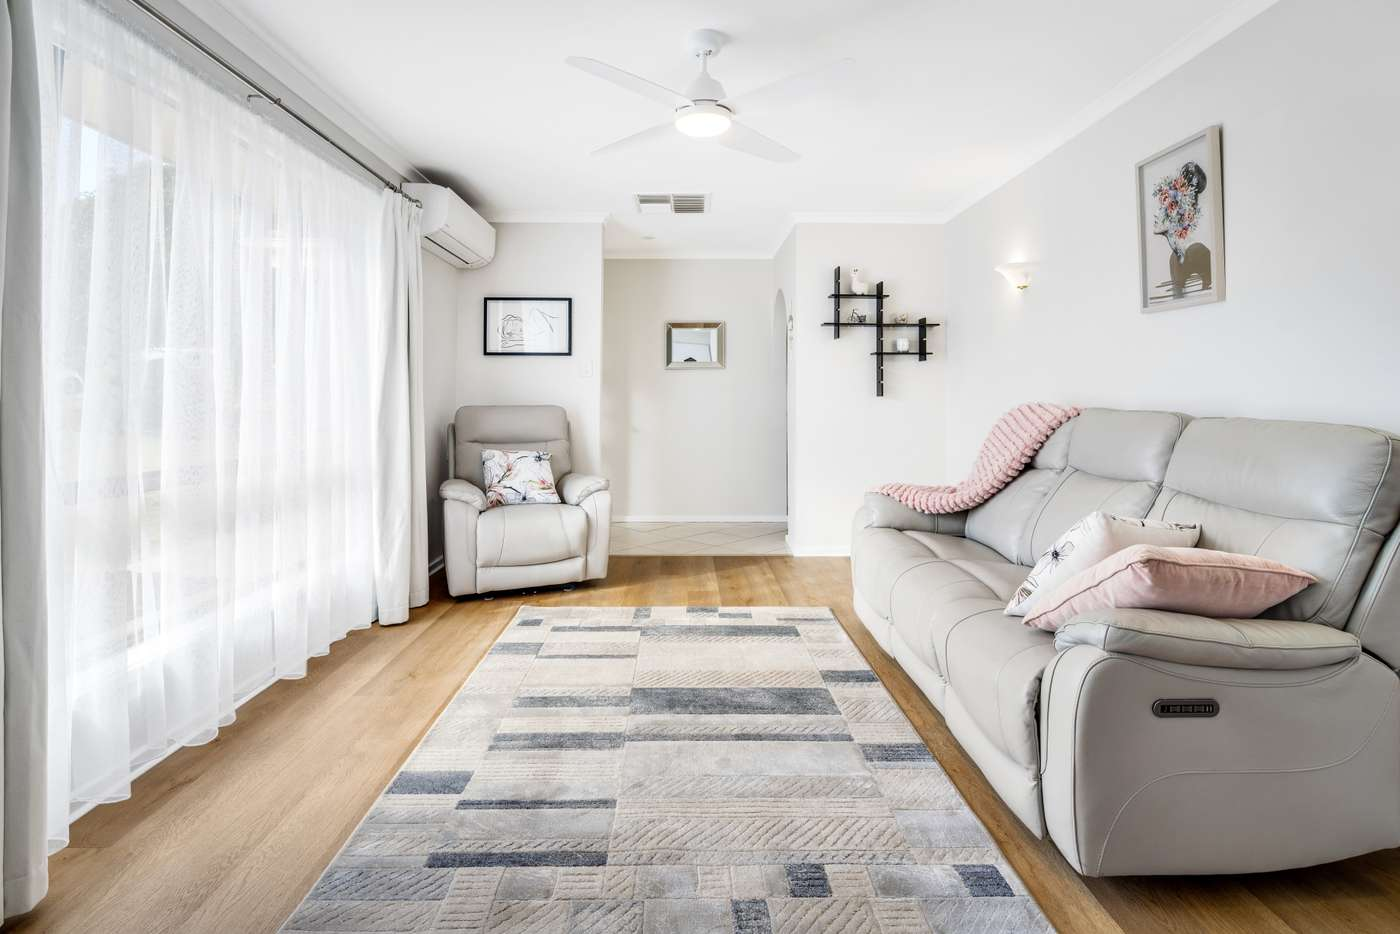 Sixth view of Homely house listing, 33 Campus Drive, Aberfoyle Park SA 5159